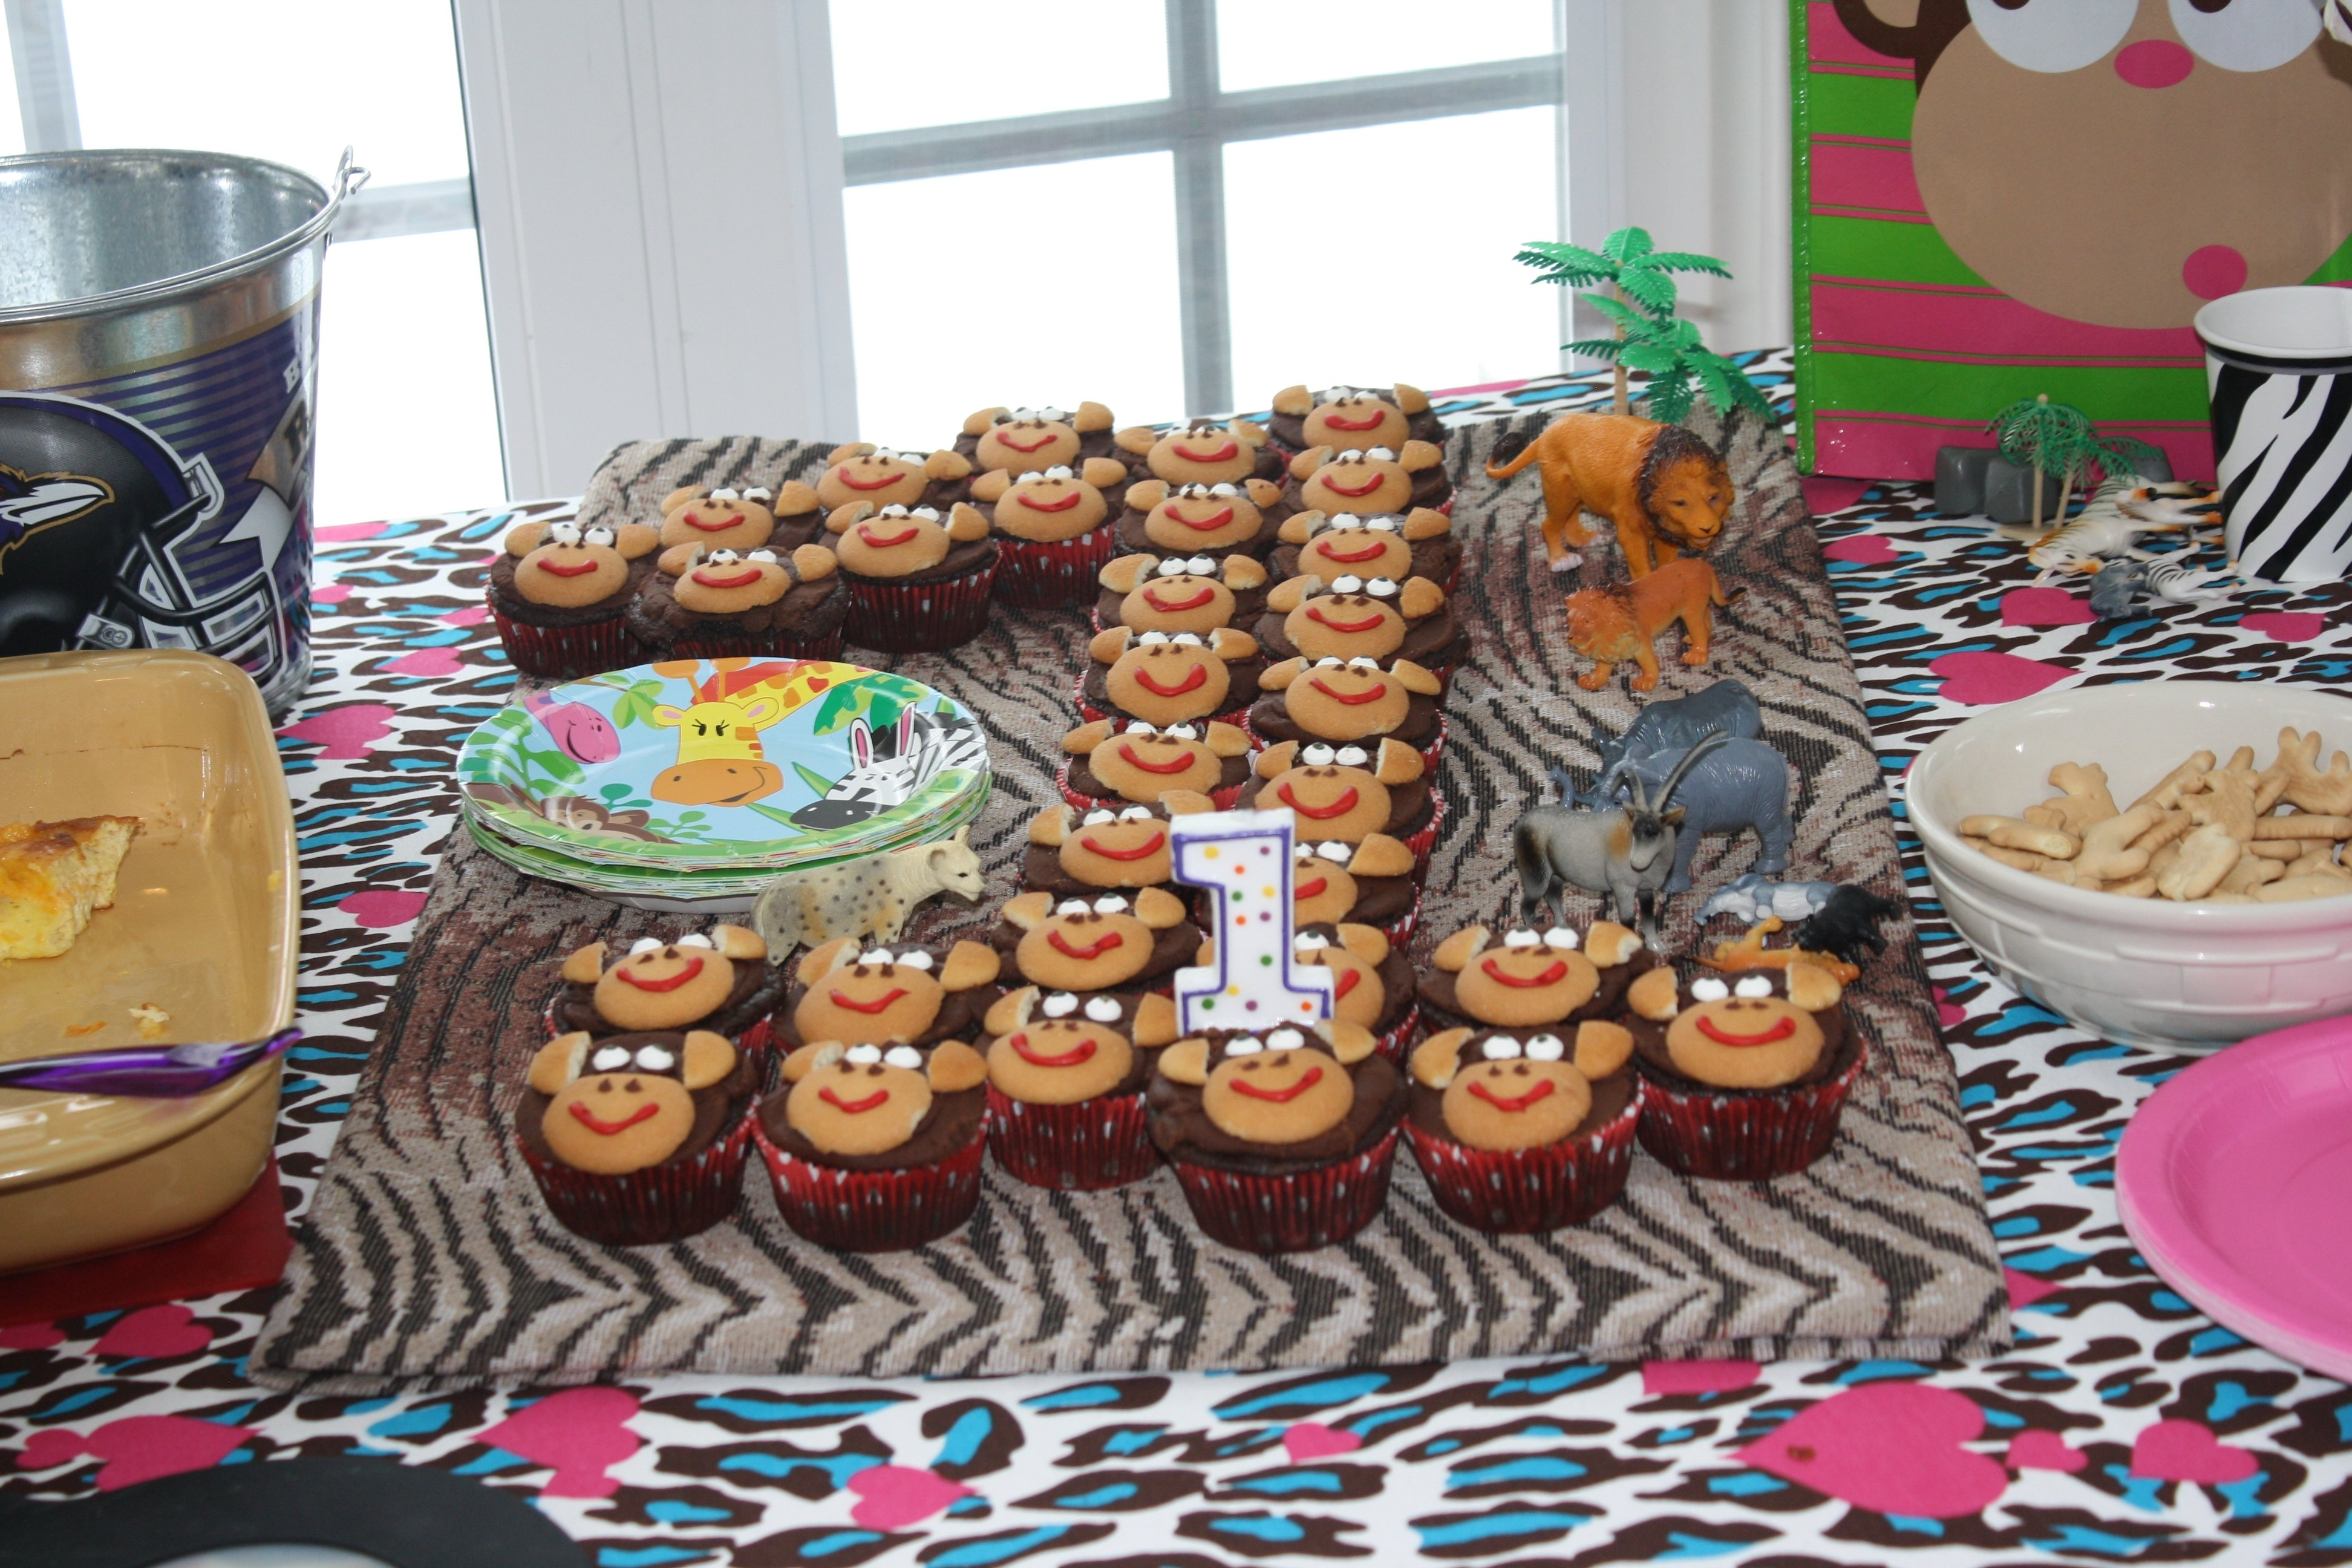 10 Ideal 1 Year Old Birthday Picture Ideas 1yr old birthday party ideas nisartmacka 2 2020